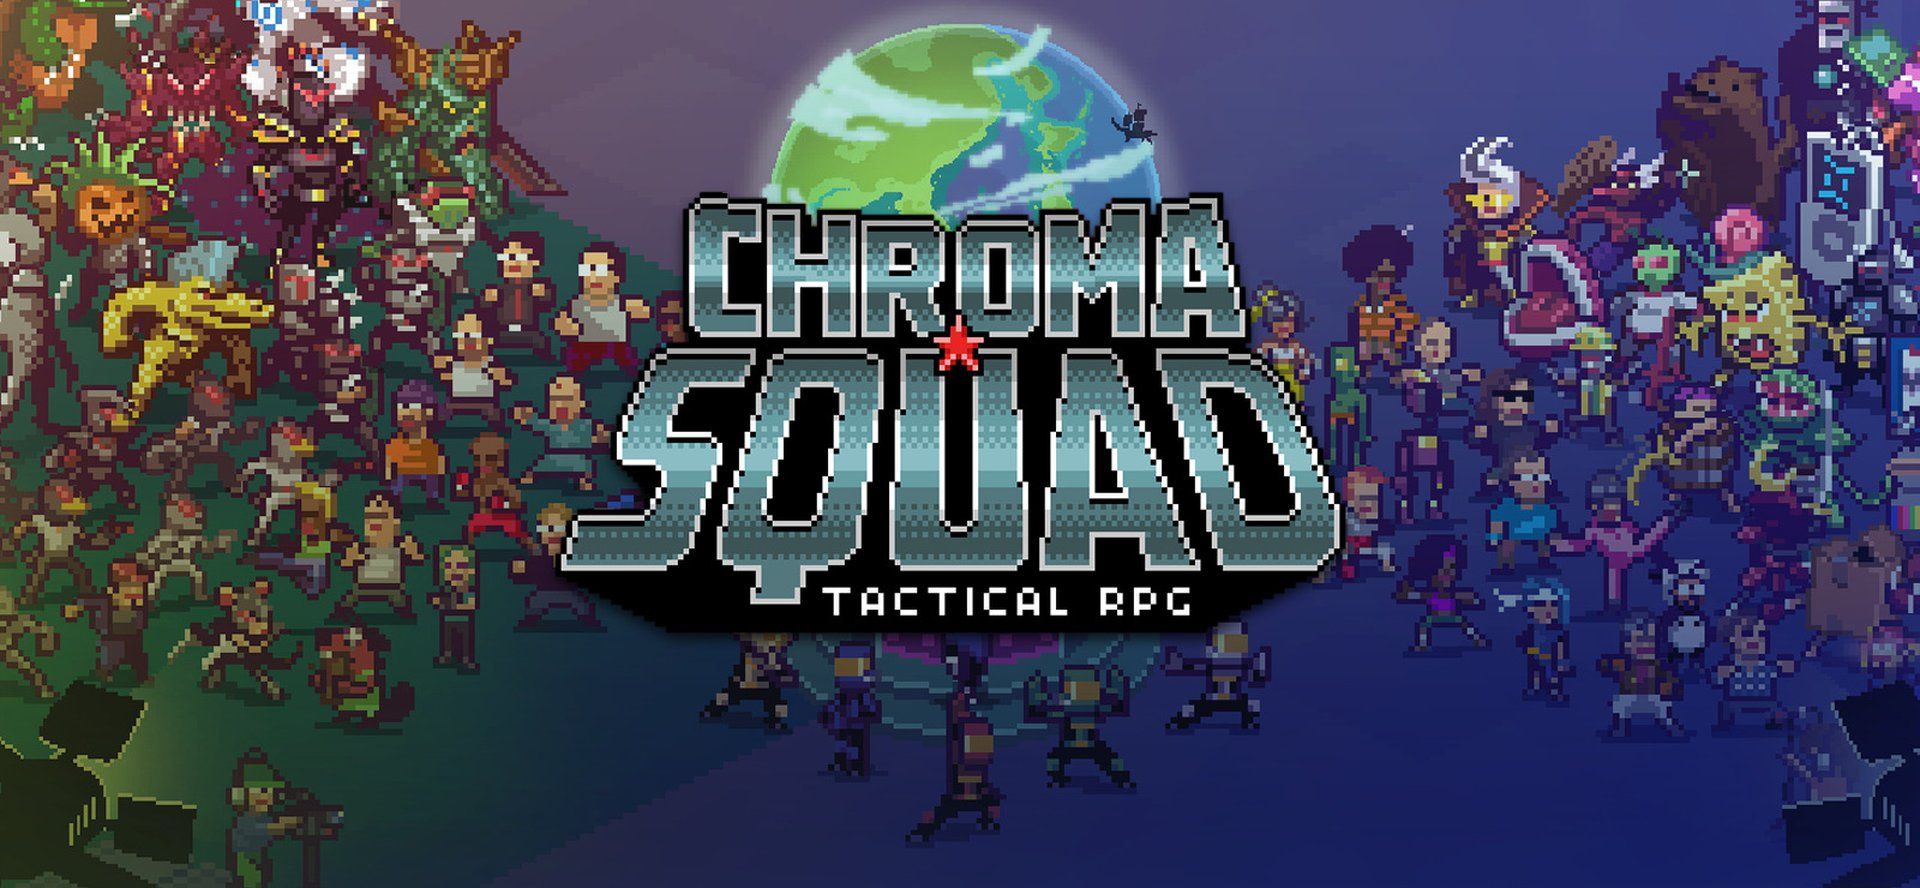 Chroma Squad Video